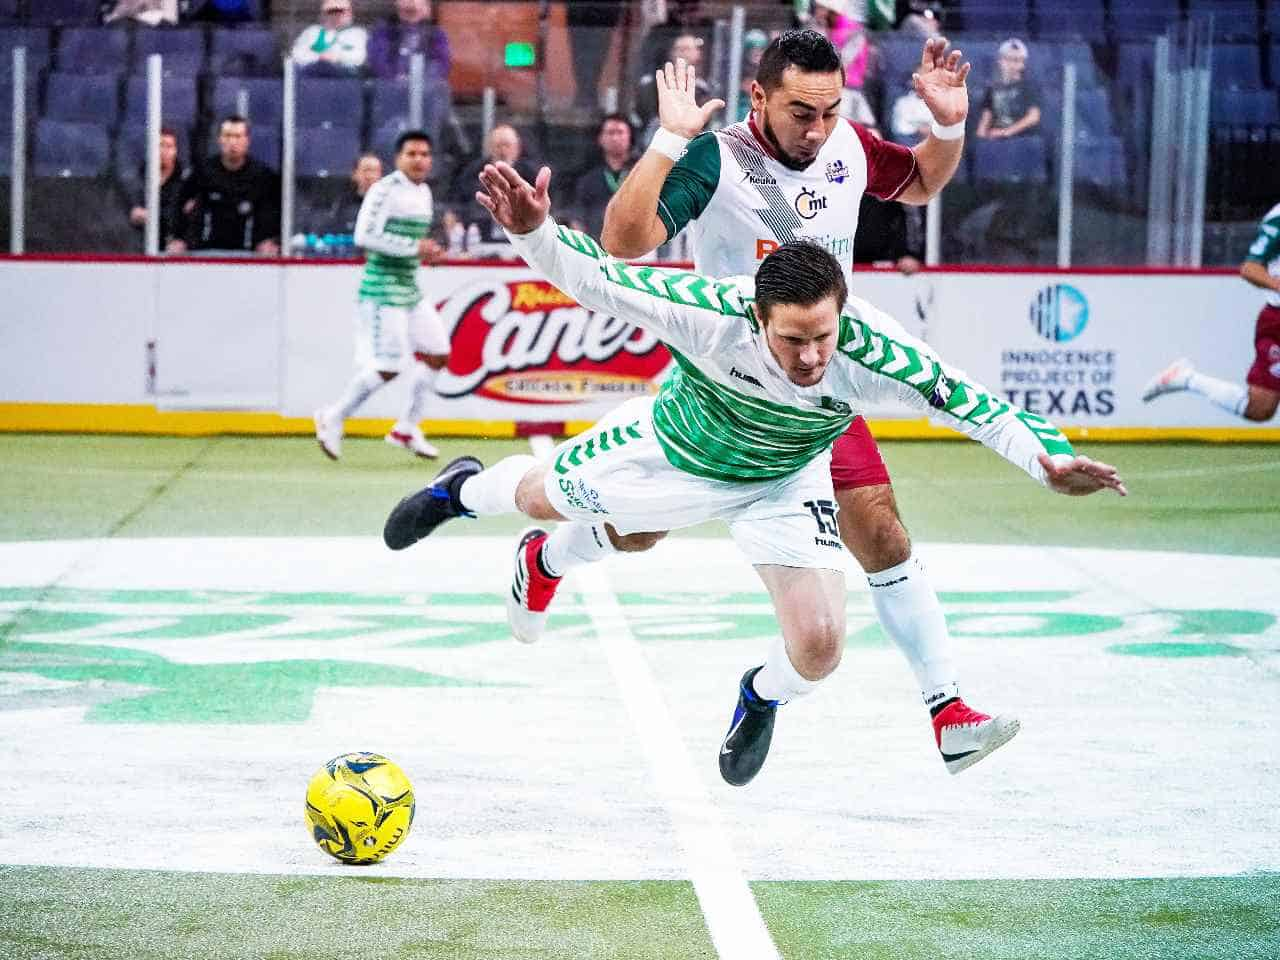 Monterrey Flash derrota de visita a Dallas Sidekicks